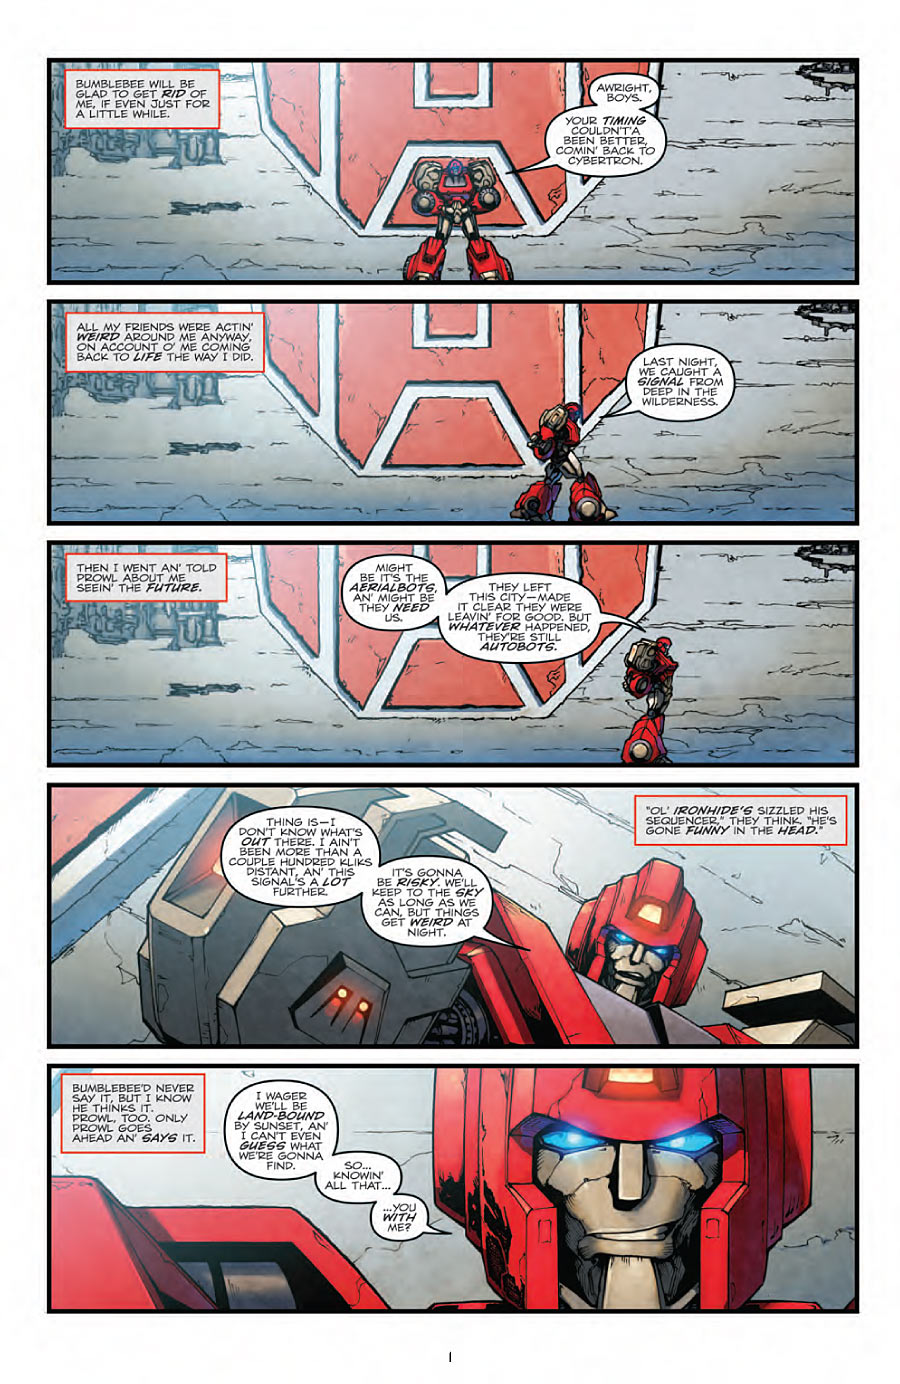 transformers-comics-robots-in-disguise-issue-8-page-1 Transformers Robots in Disguise #8